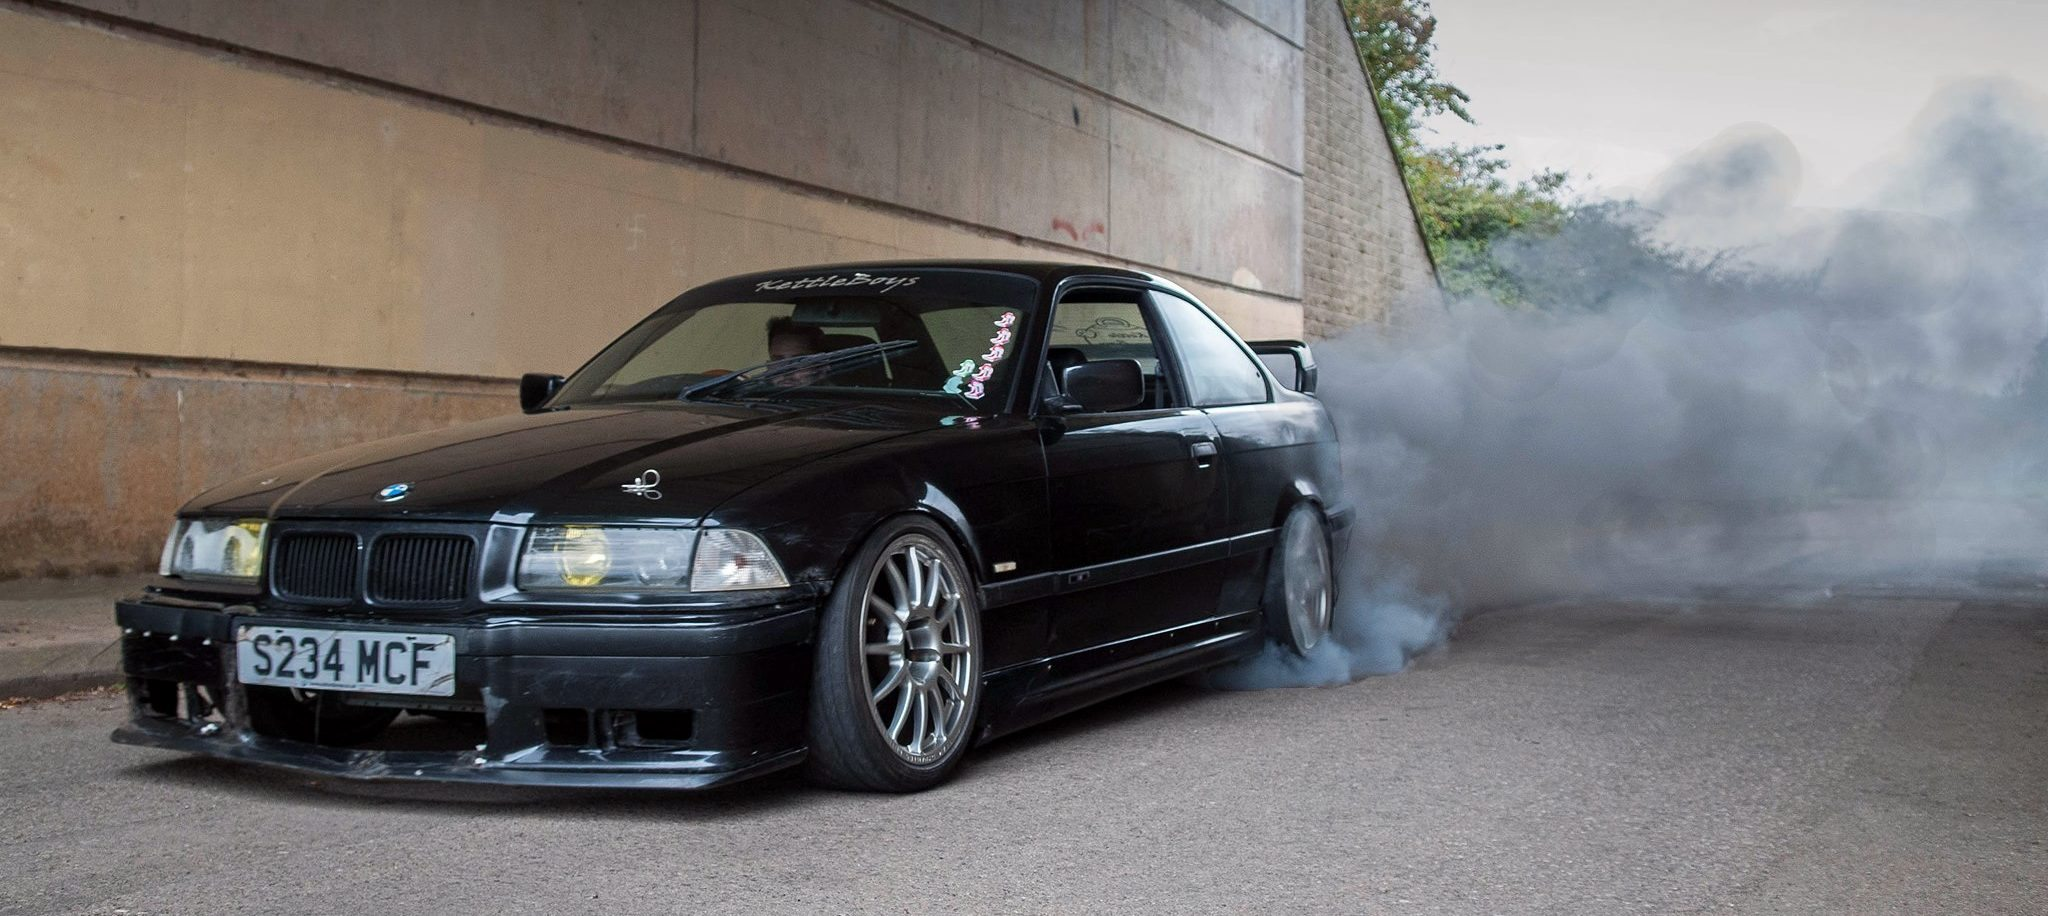 7 Reasons You Can Smell A Burning Rubber Smell In Your Car